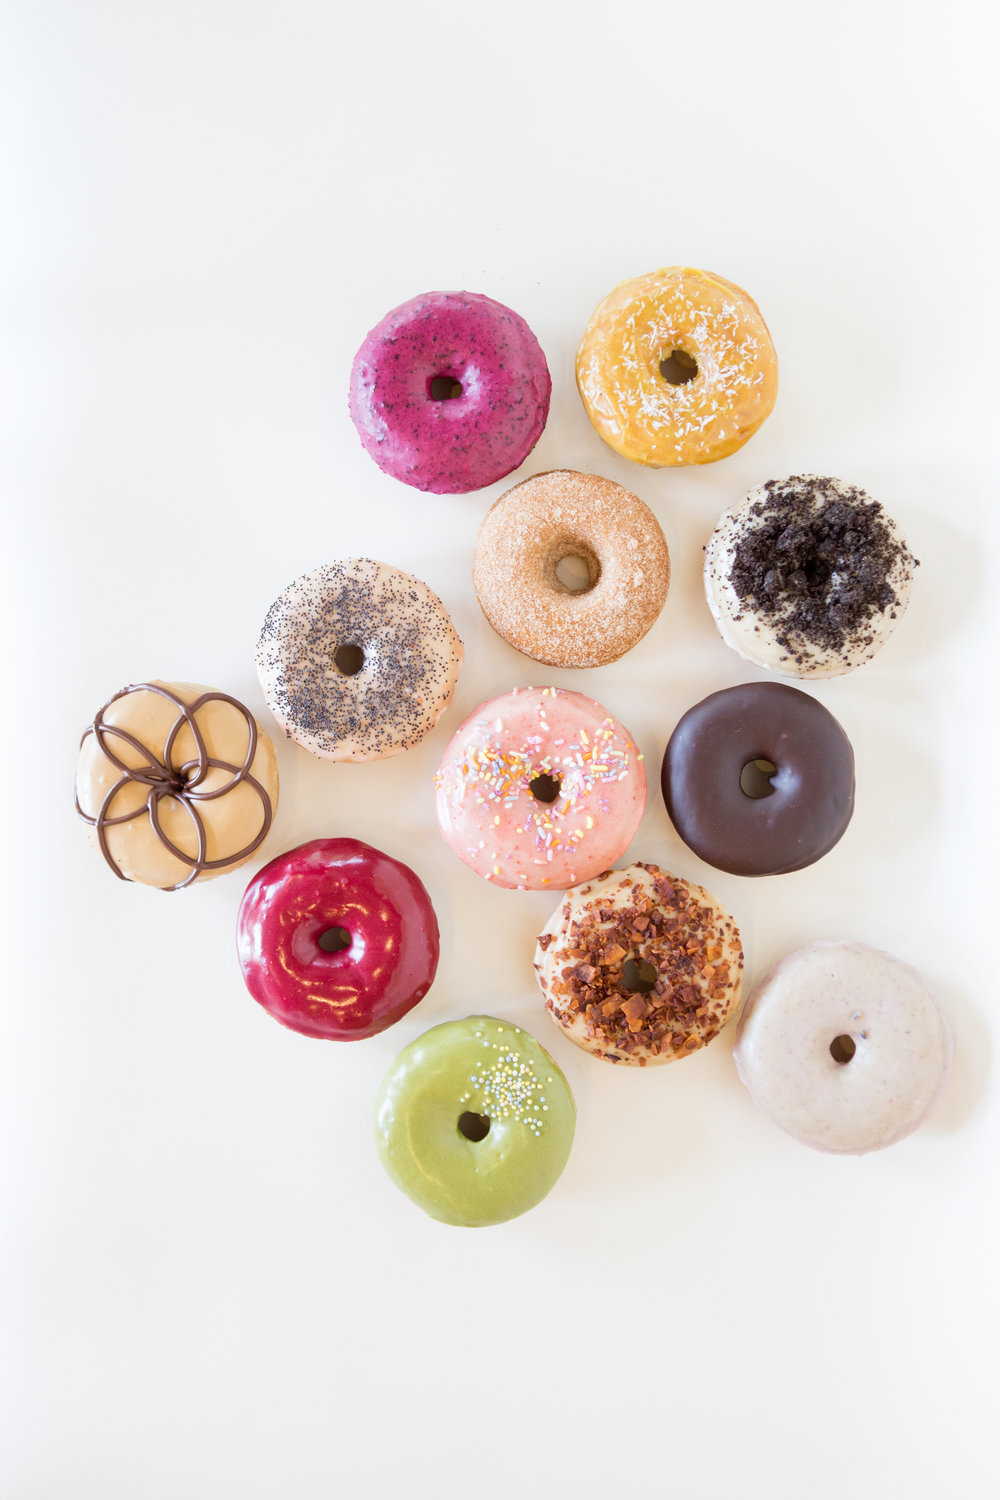 Food photography of vegan donuts for Rainbow Bakery, a vegan bakery in Bloomington, Indiana.